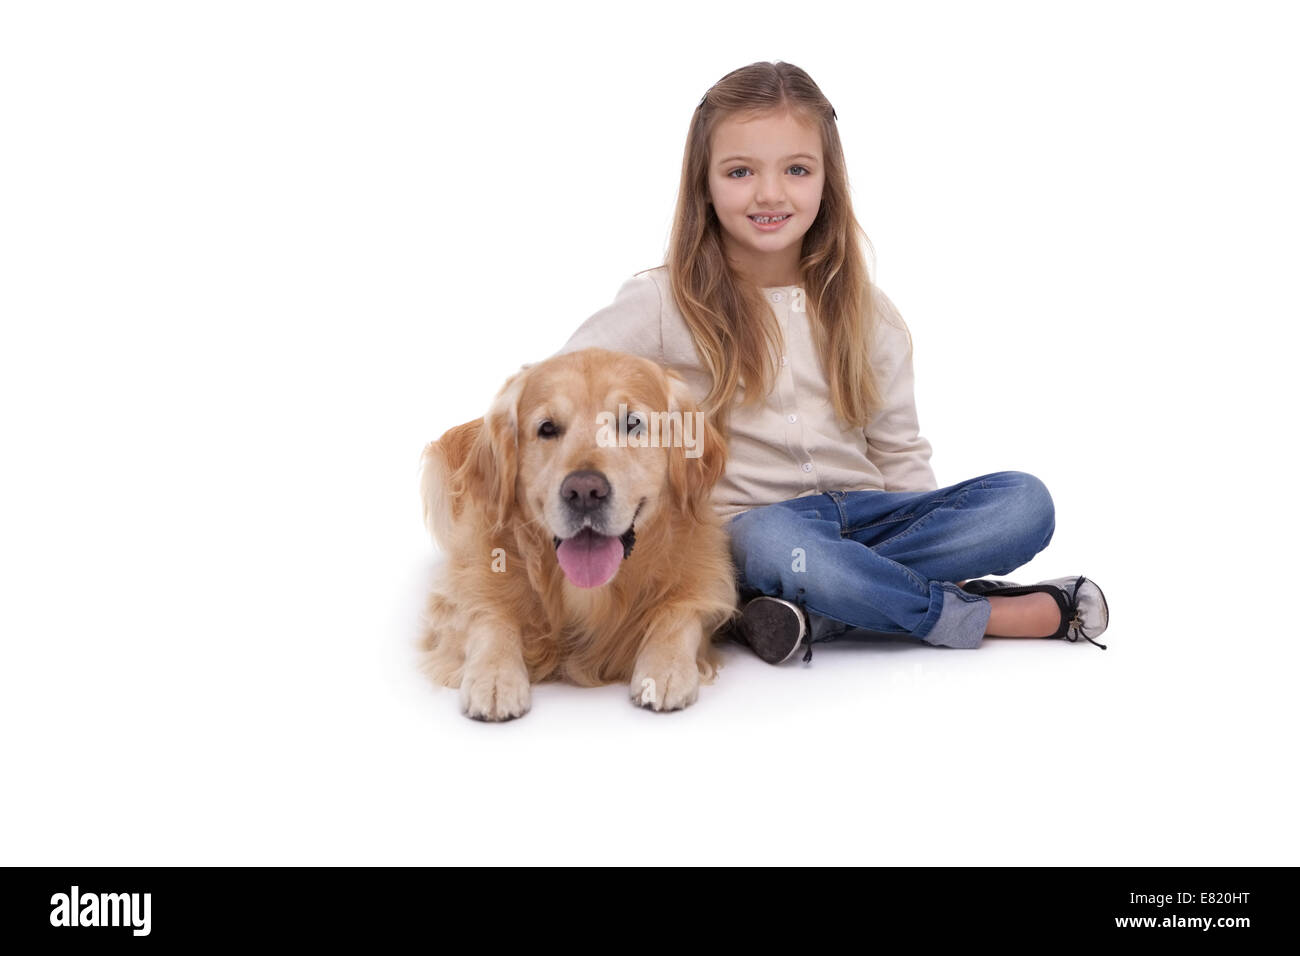 Girl sitting beside her pet dog - Stock Image